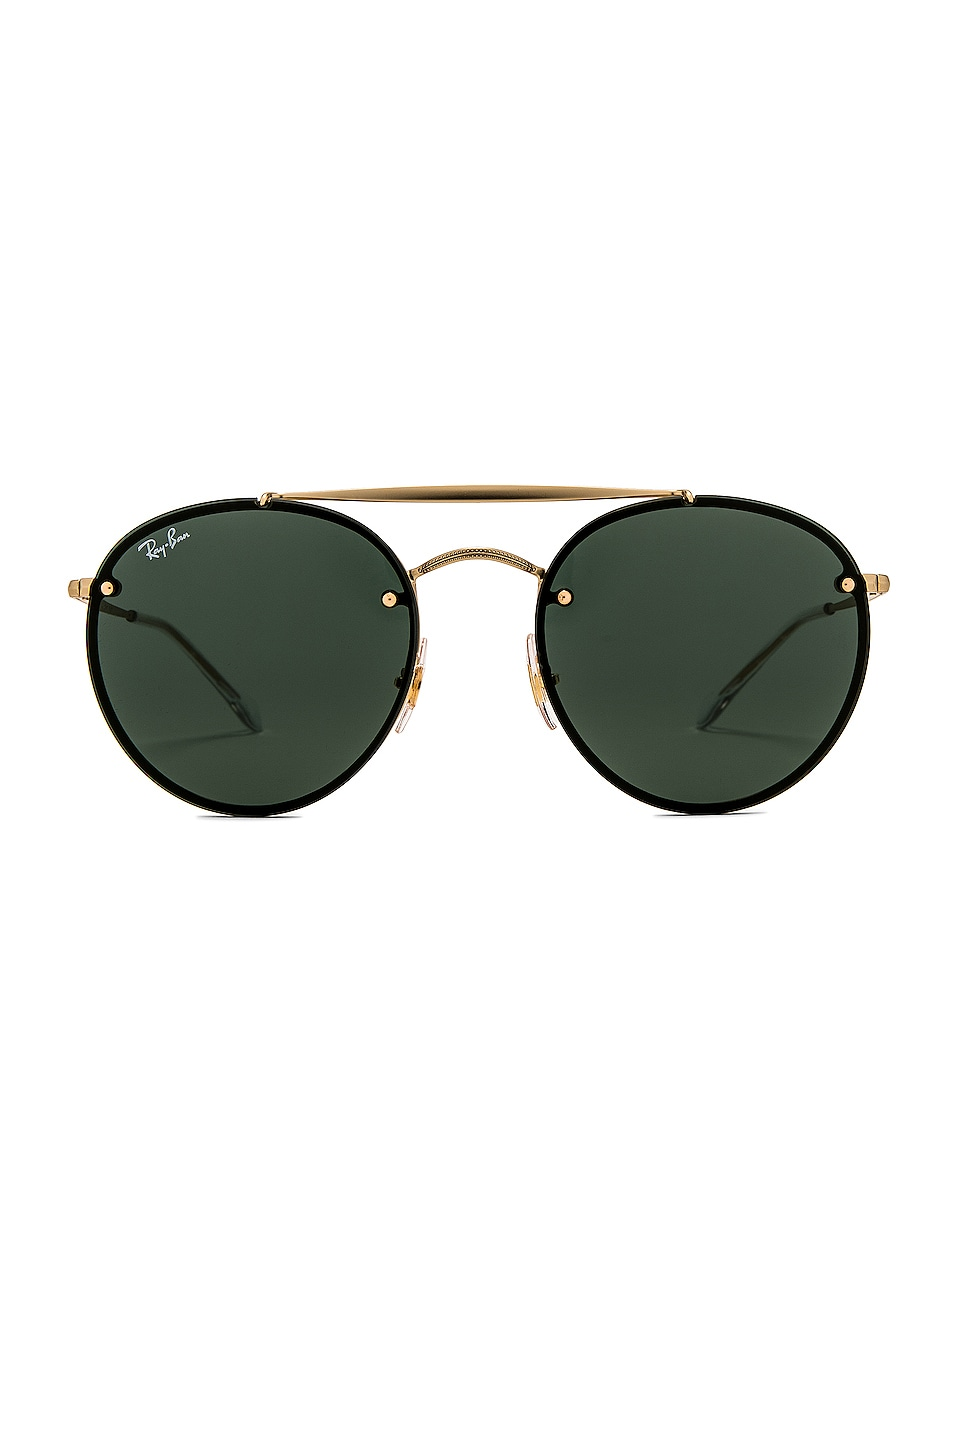 Ray-Ban Blaze Double Bridge in Demi Gloss Gold & Dark Green